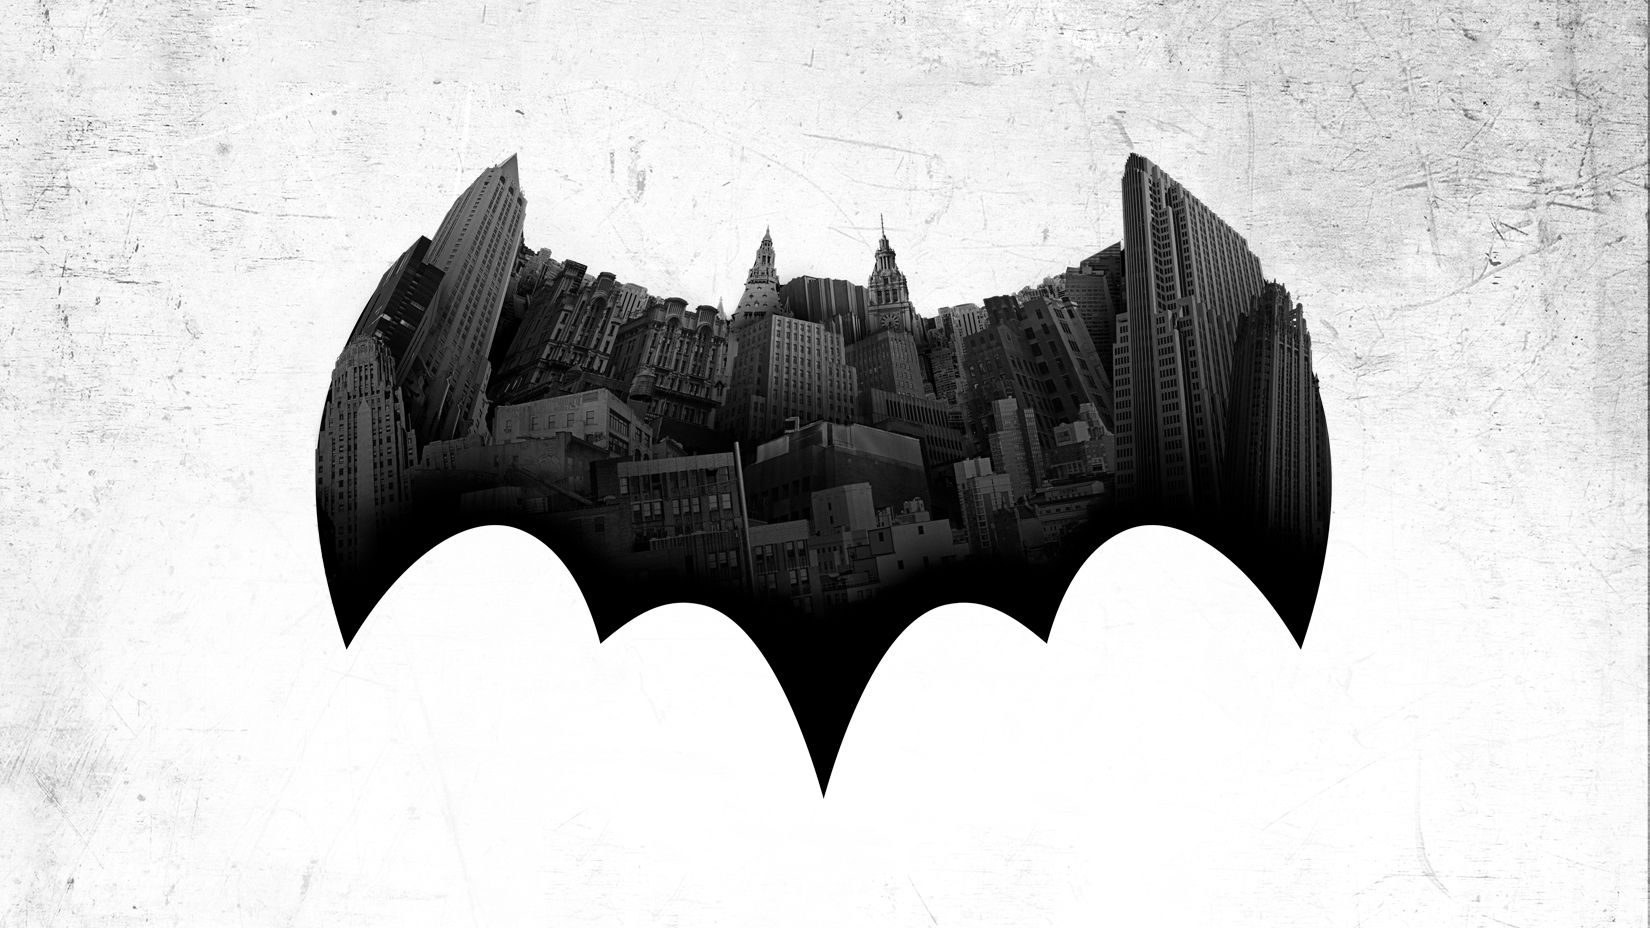 batman telltale wallpaper  Batman Telltale Symbol Wallpaper No Text. | Gaming News | Pinterest ...